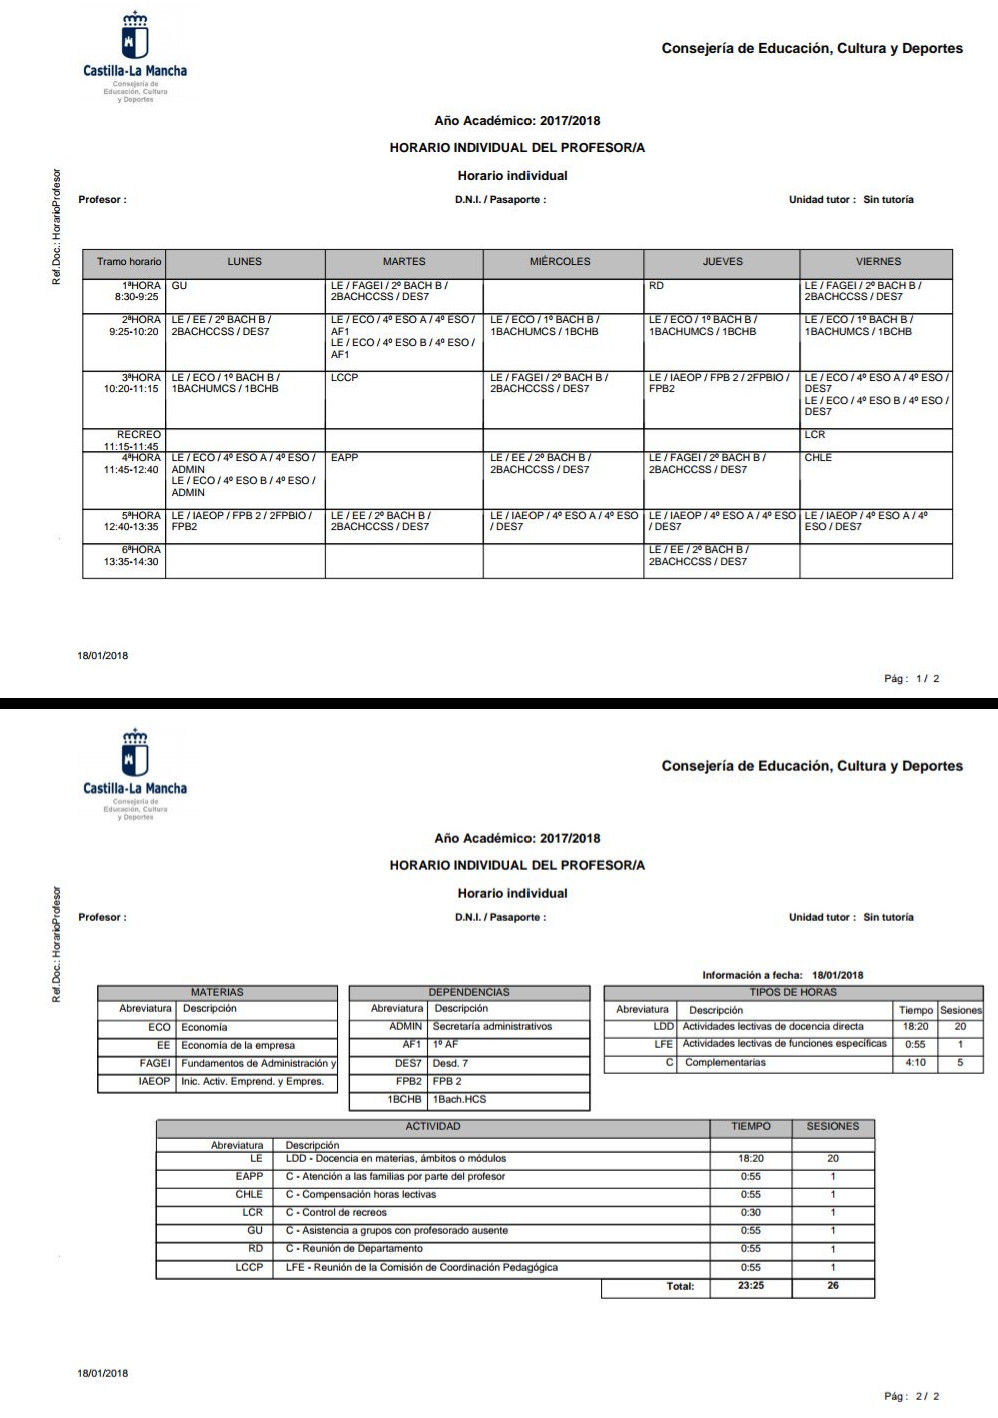 Calendario Escolar Madrid 202018.Horarios Secundaria Madrid Vs Resto Ccaa